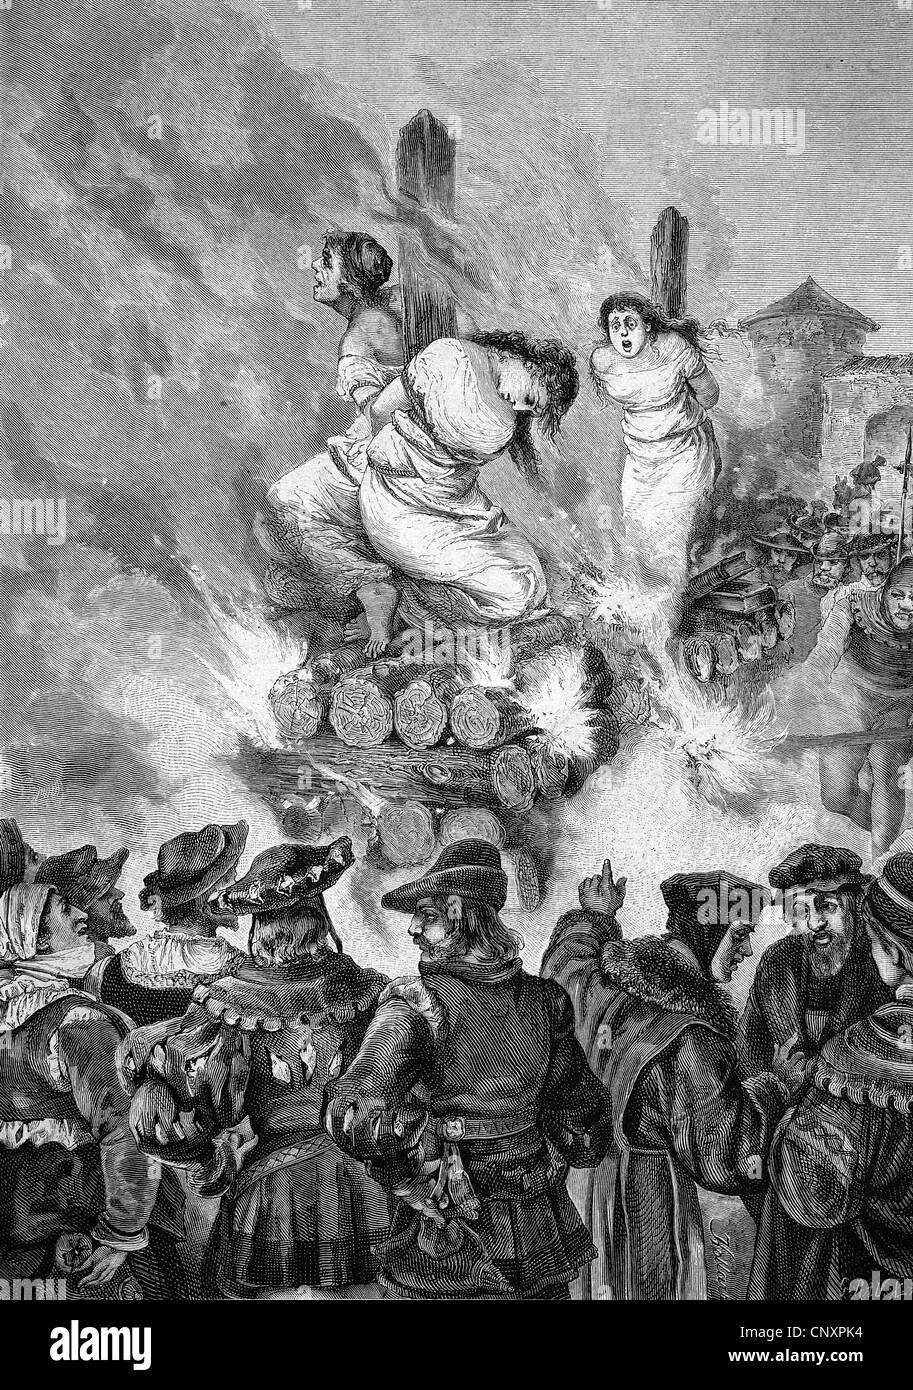 Burning of witches in medieval times, historical engraving of 1883 - Stock Image